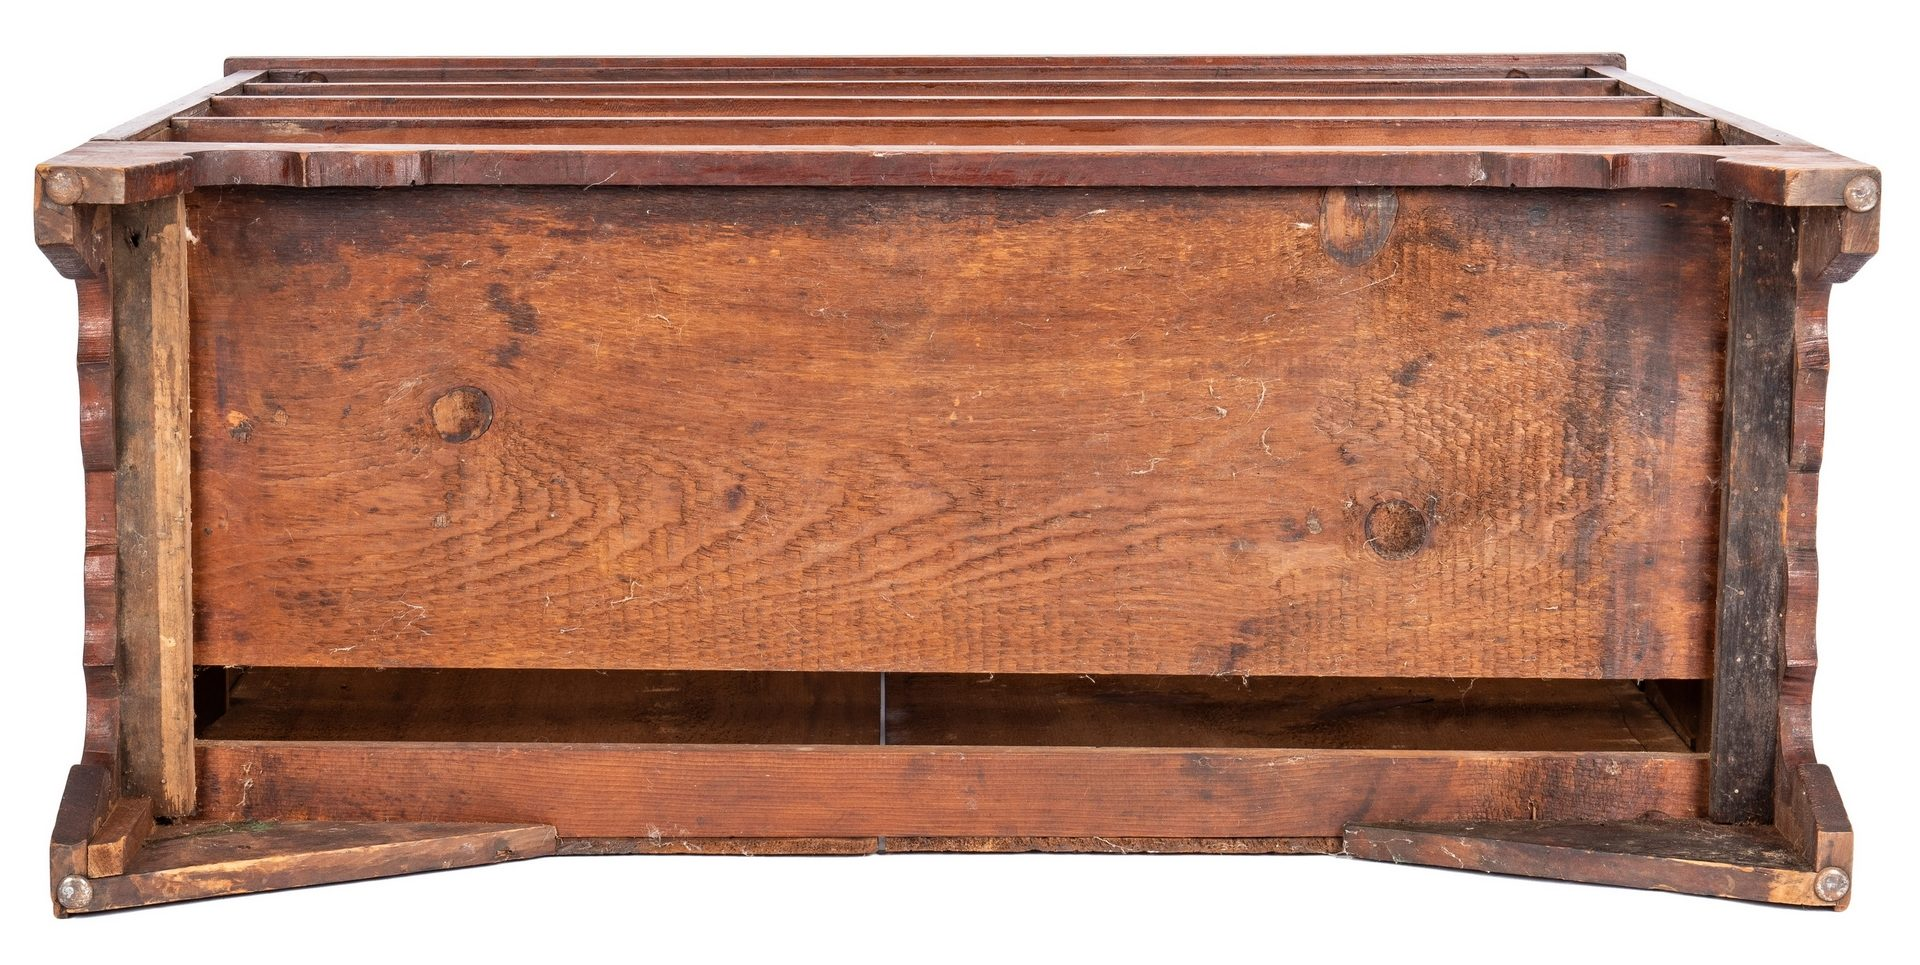 Lot 120: Southern Hepplewhite Cherry Chest of Drawers